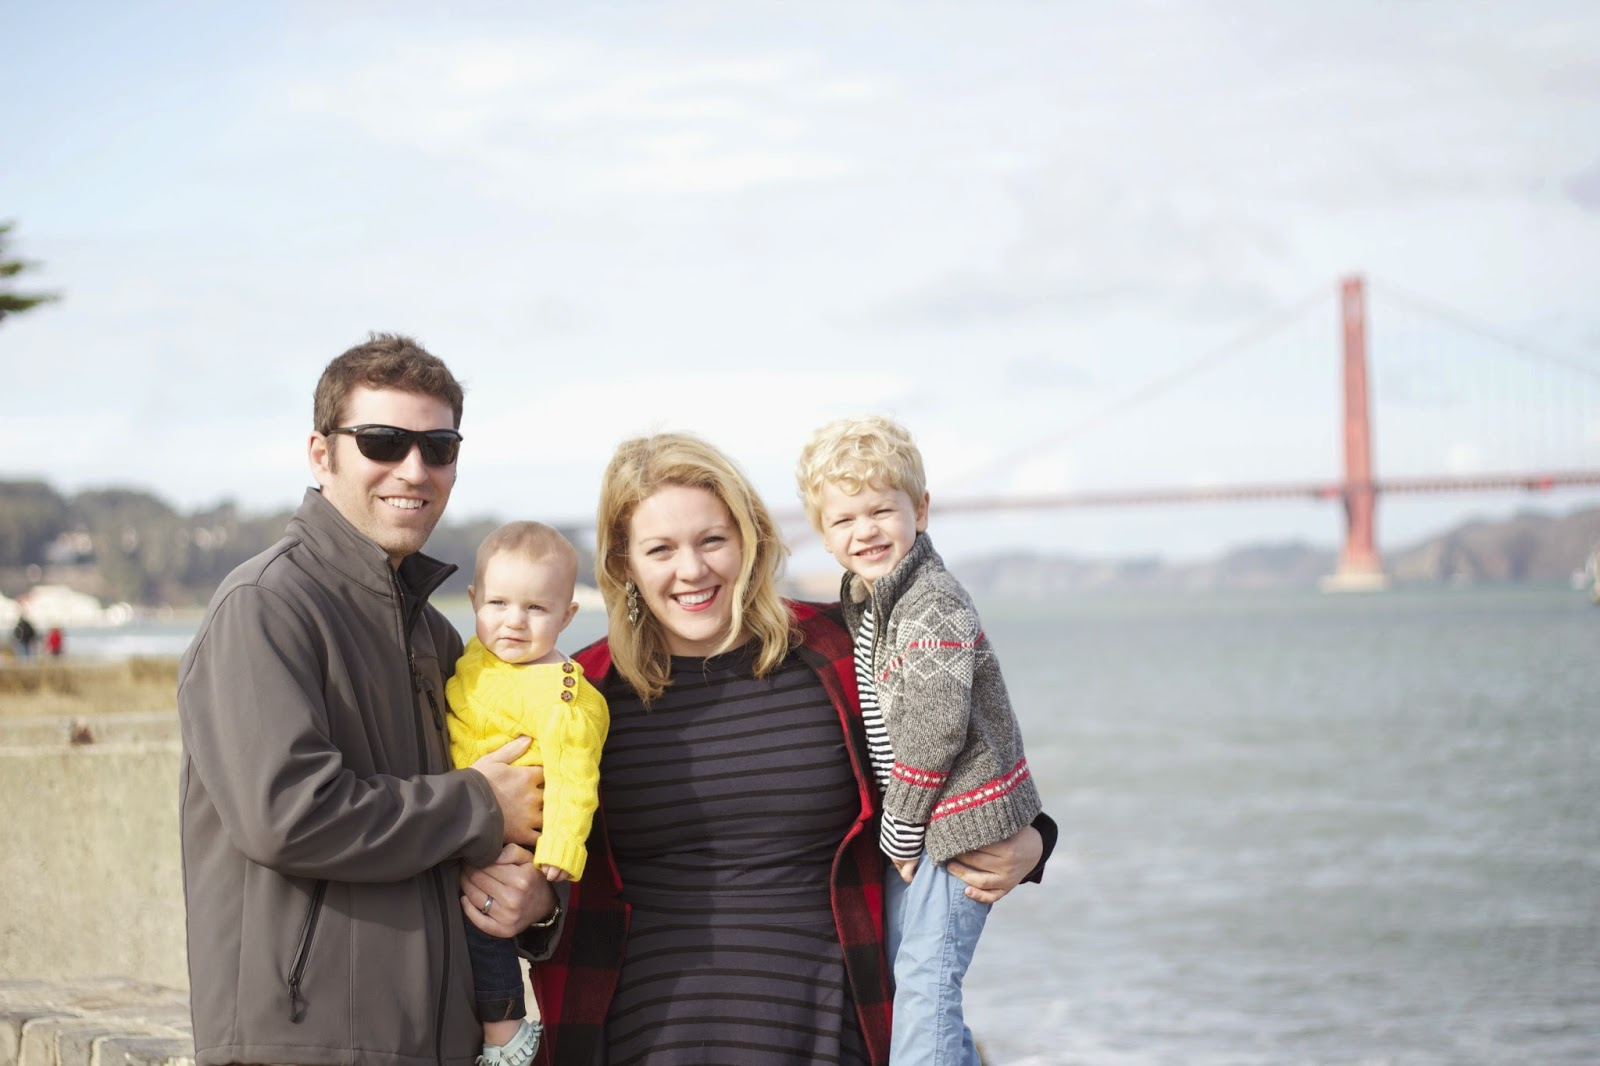 What to do when traveling to San Francisco with kids